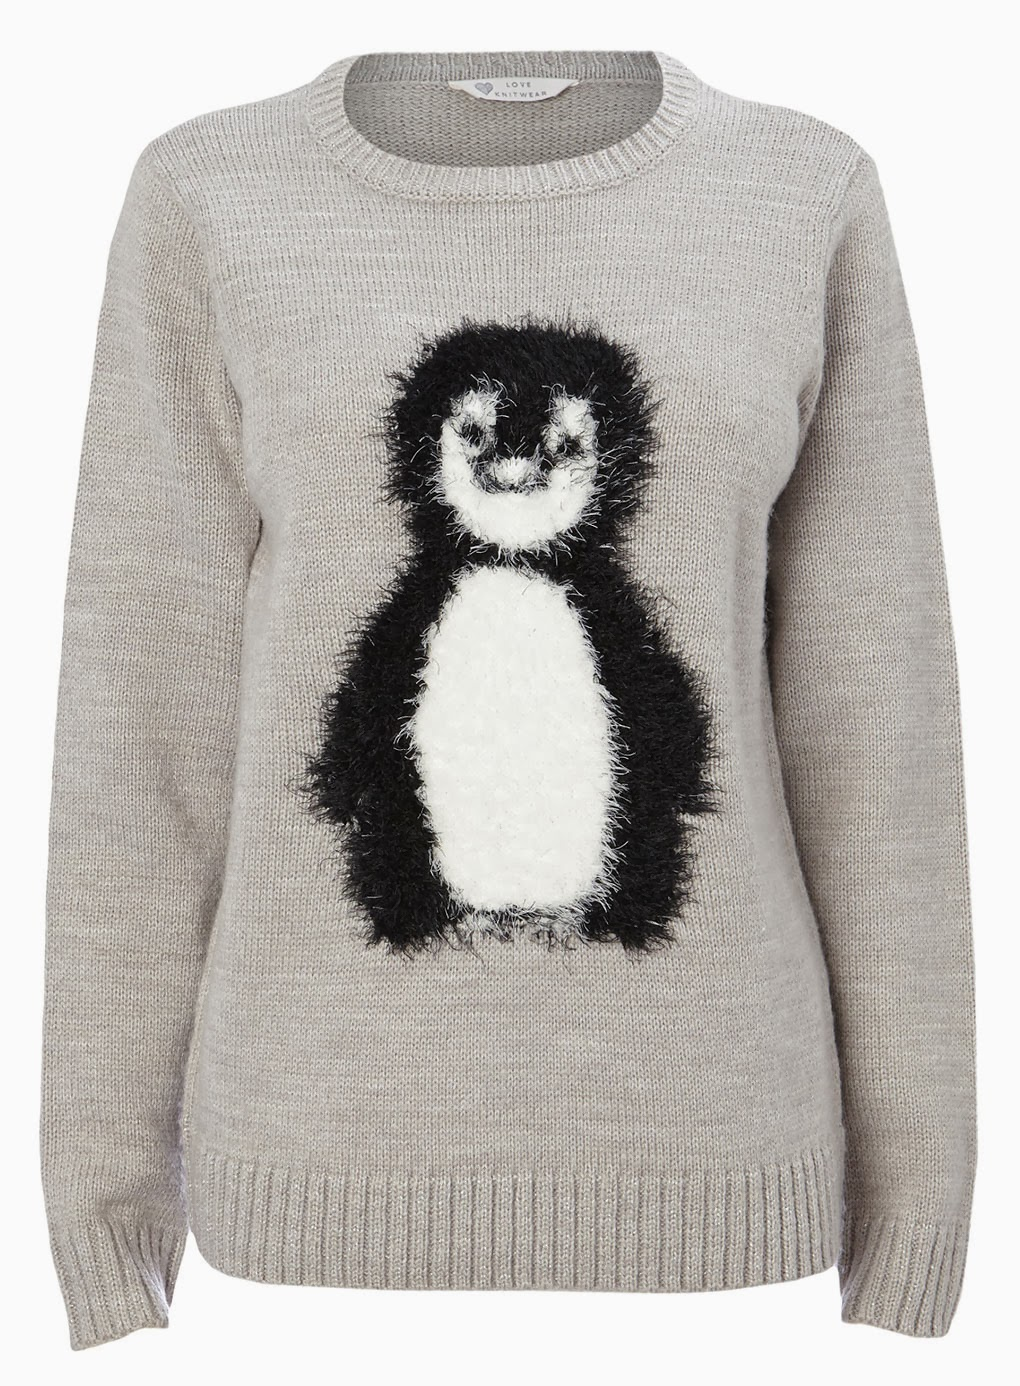 Womens Oysho Penguin Jumper Size M or UK Pre-Owned. $ From United Kingdom. South grey penguin womens jumper ladies jumper size UK18 EU46 US14 (81) Pre-Owned. $ From United Kingdom. Mens Grey Penguin Jumper Size Medium - .